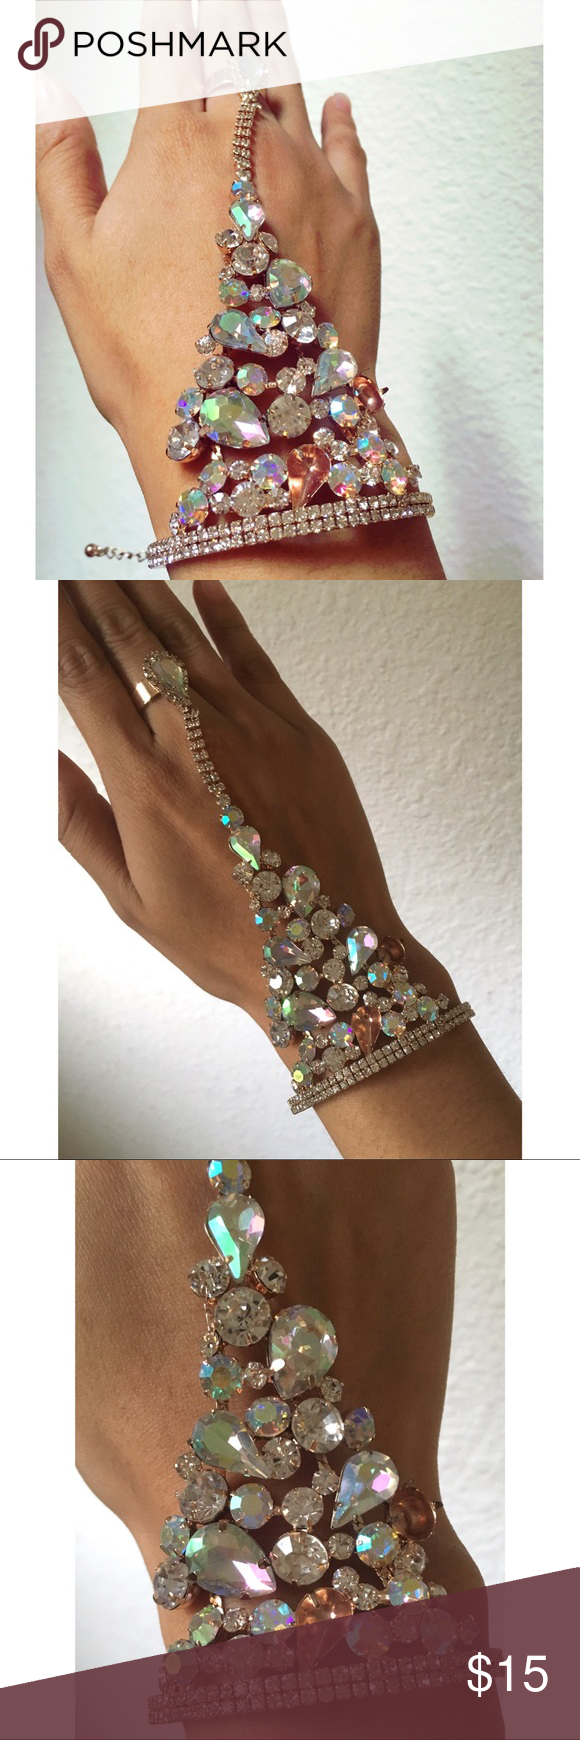 Beautiful Hand Bracelet With Ring | Hand bracelet, Beautiful hands ...